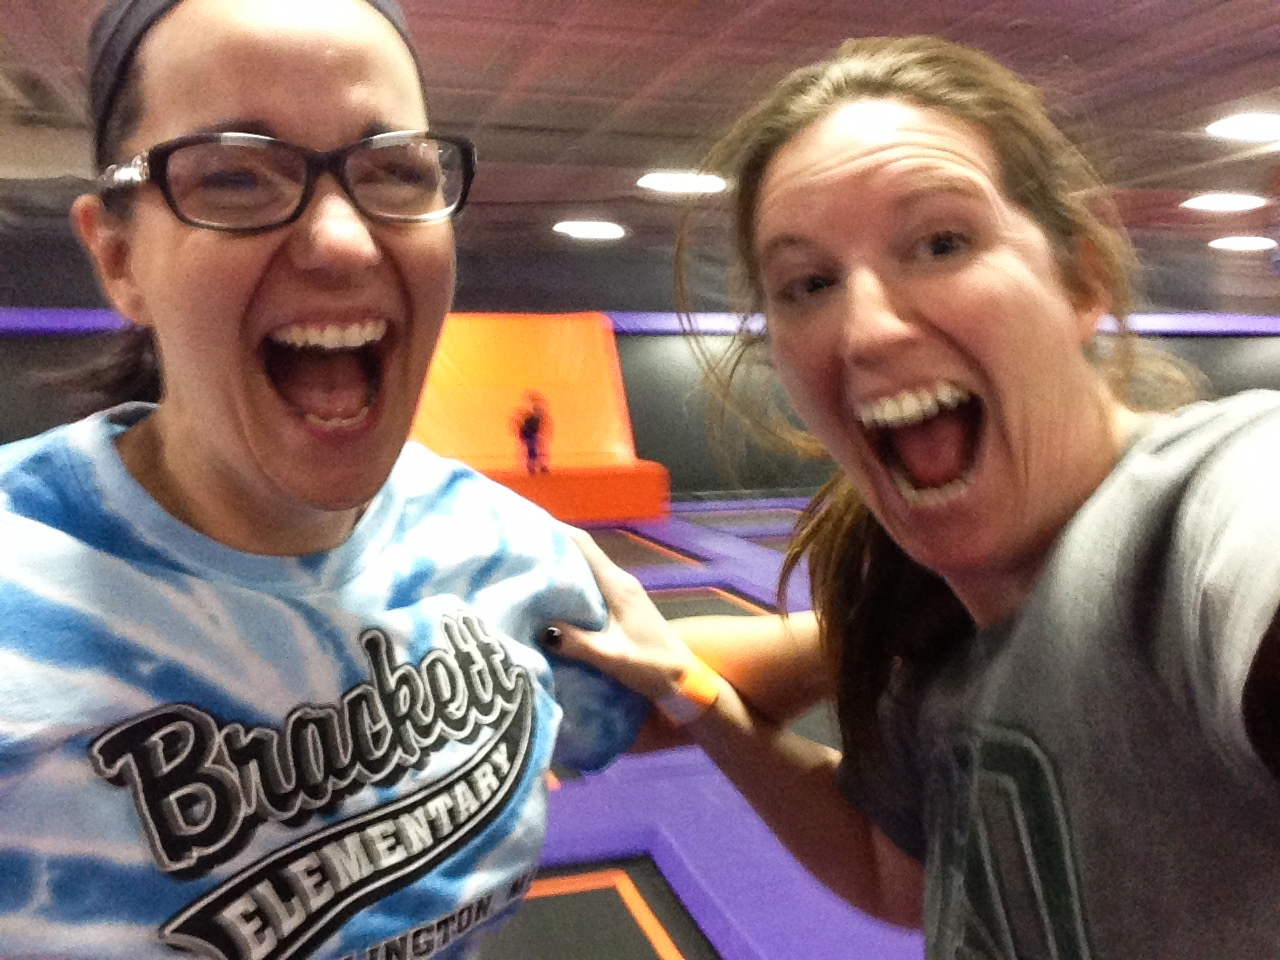 at a local trampoline park, 2015